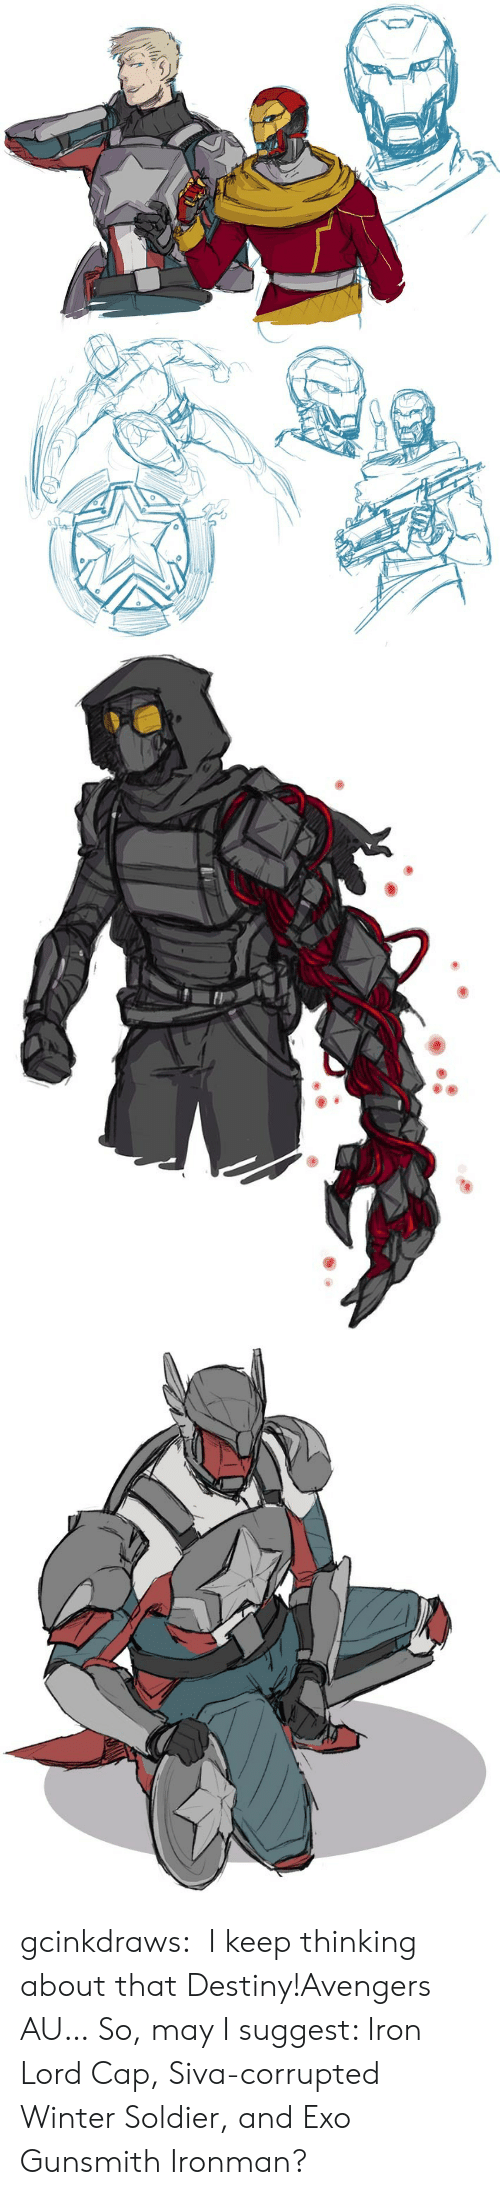 Destiny, Tumblr, and Winter: gcinkdraws:   I keep thinking about that Destiny!Avengers AU… So, may I suggest: Iron Lord Cap, Siva-corrupted Winter Soldier, and Exo Gunsmith Ironman?